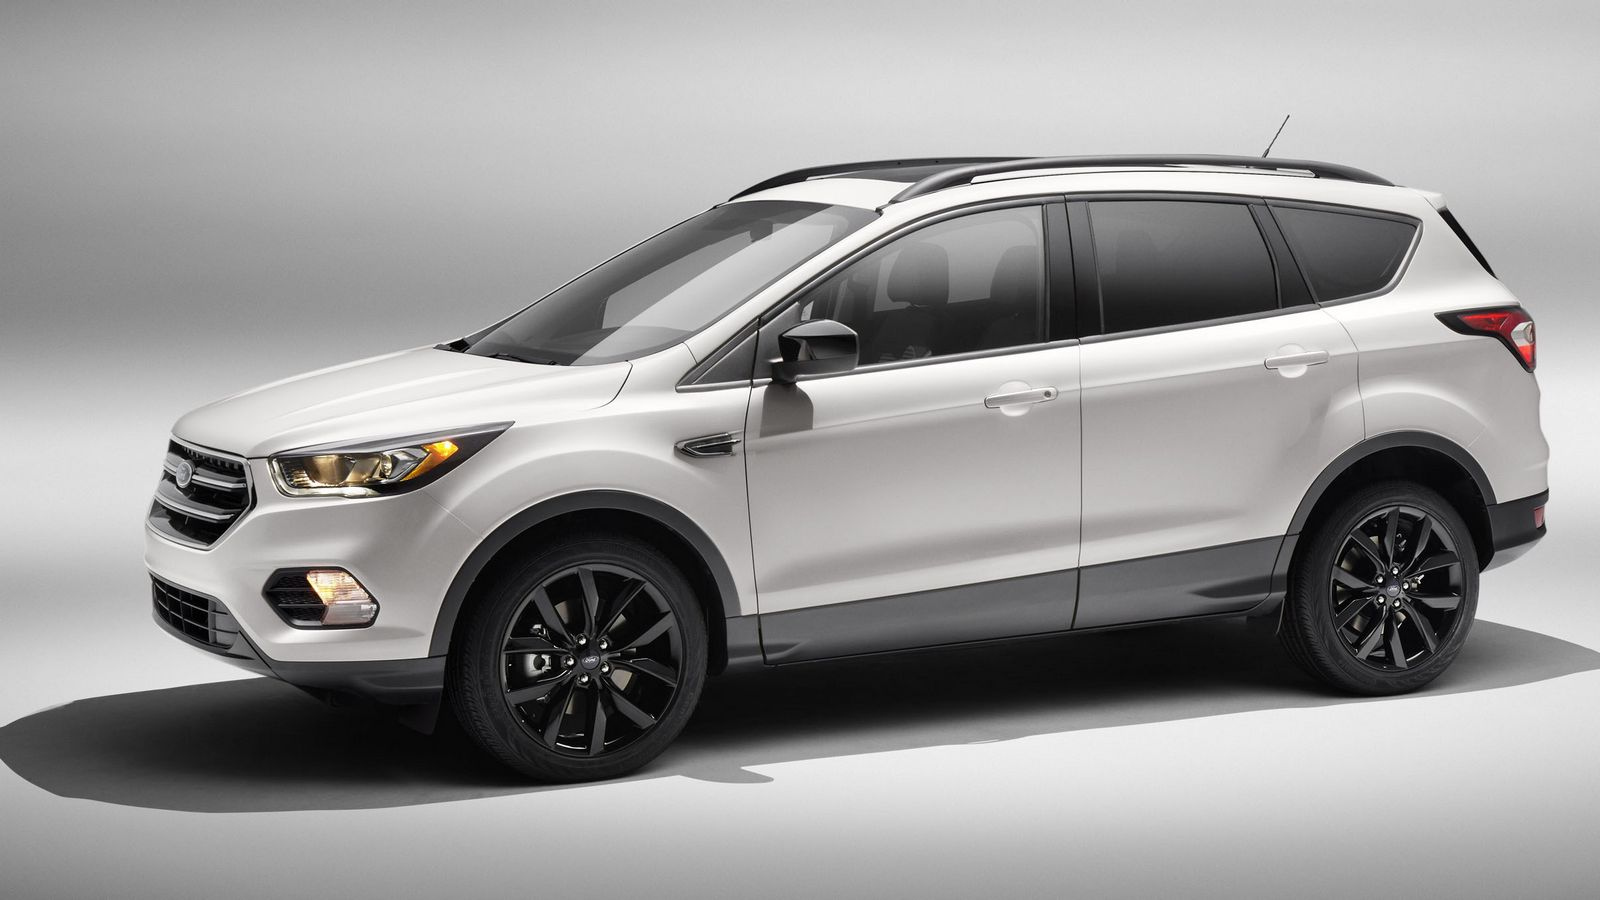 2017 ford escape receives sport appearance pack carscoops. Black Bedroom Furniture Sets. Home Design Ideas